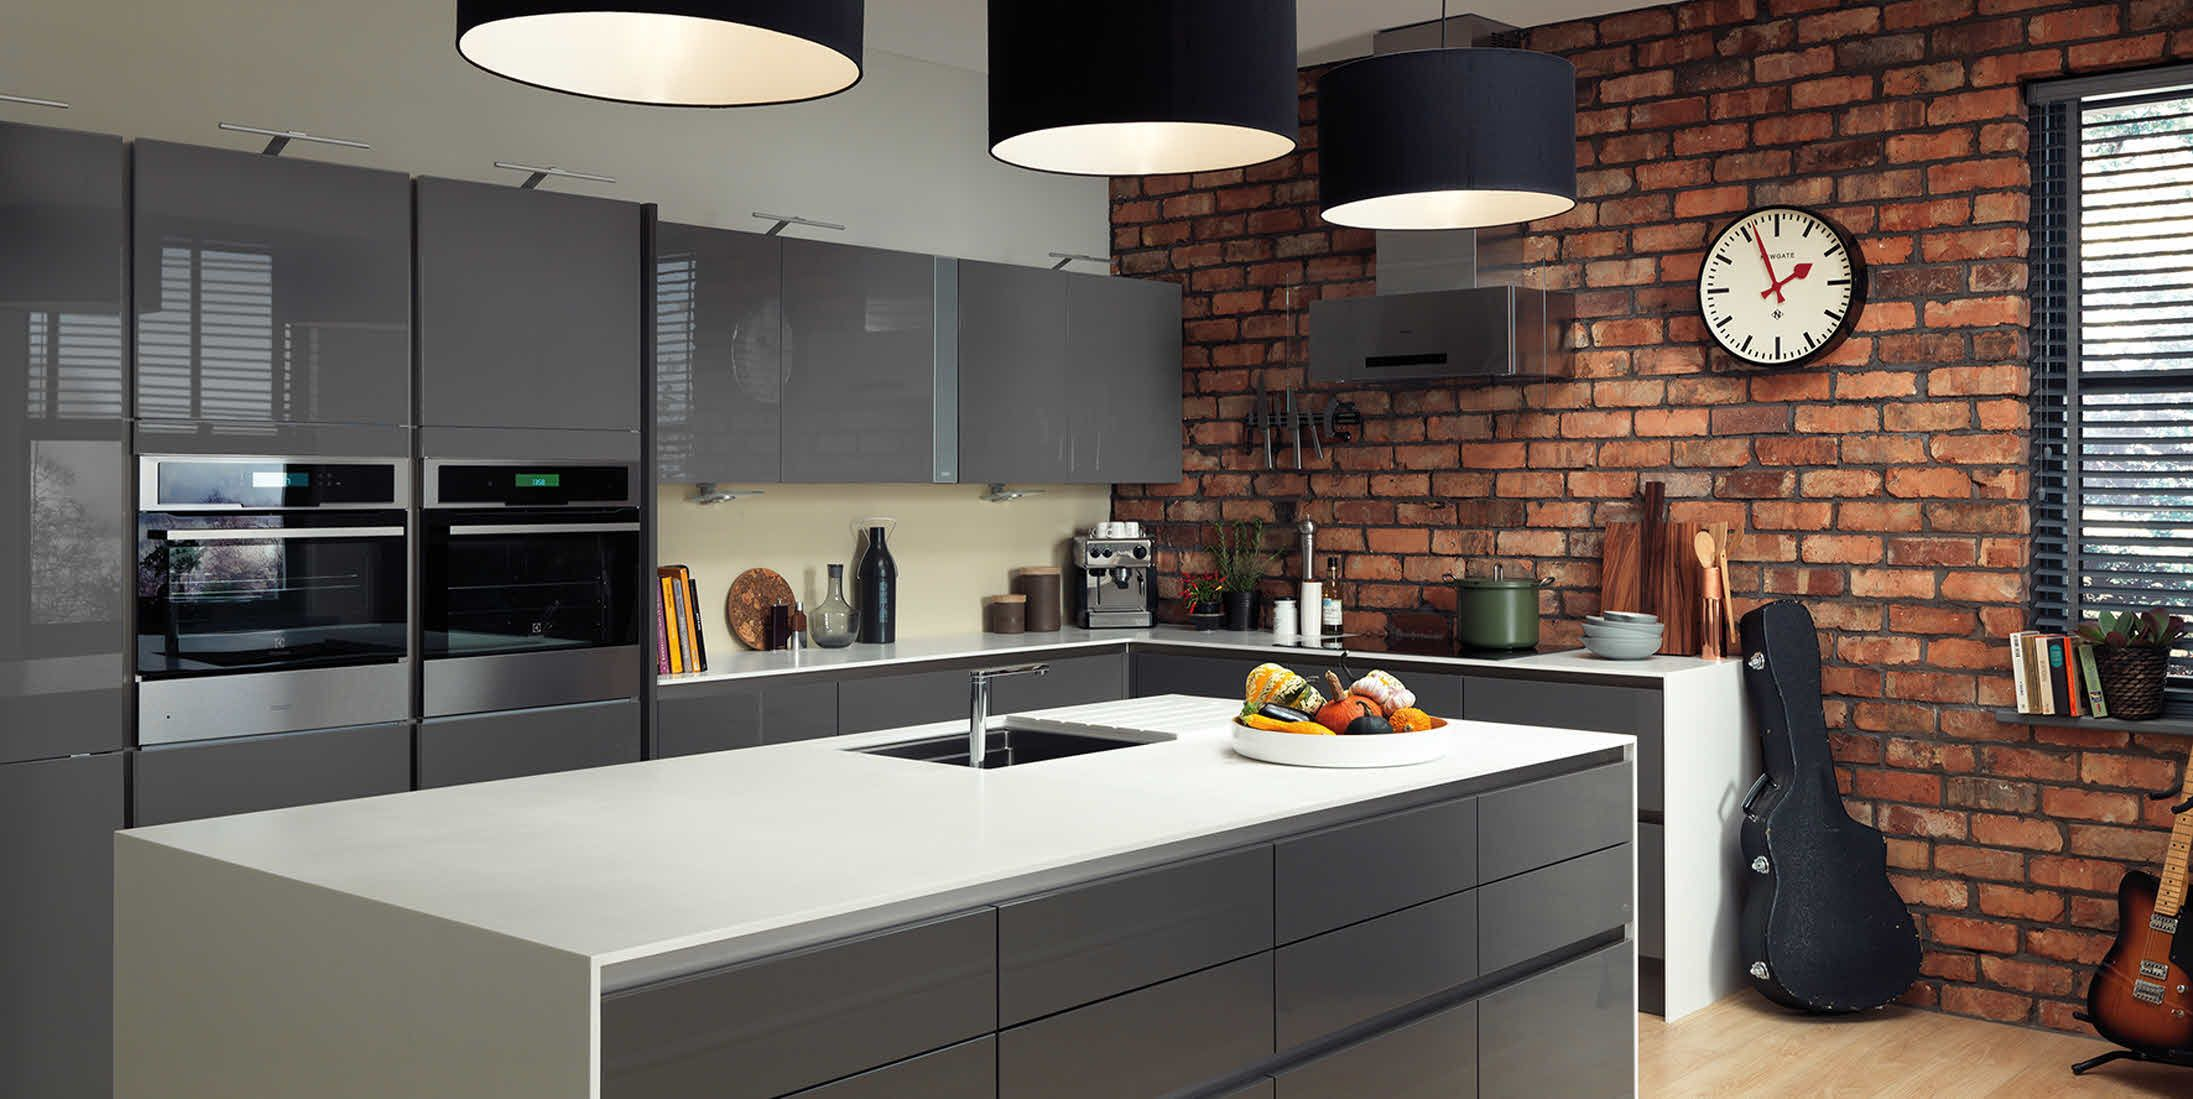 Grey kitchen modern kitchen london by lwk kitchens london - Exquisite Grey Kitchens Paint And Color Decoration Ideas Charming Drum Shade Pendant Kitchen Contemporarykitchen